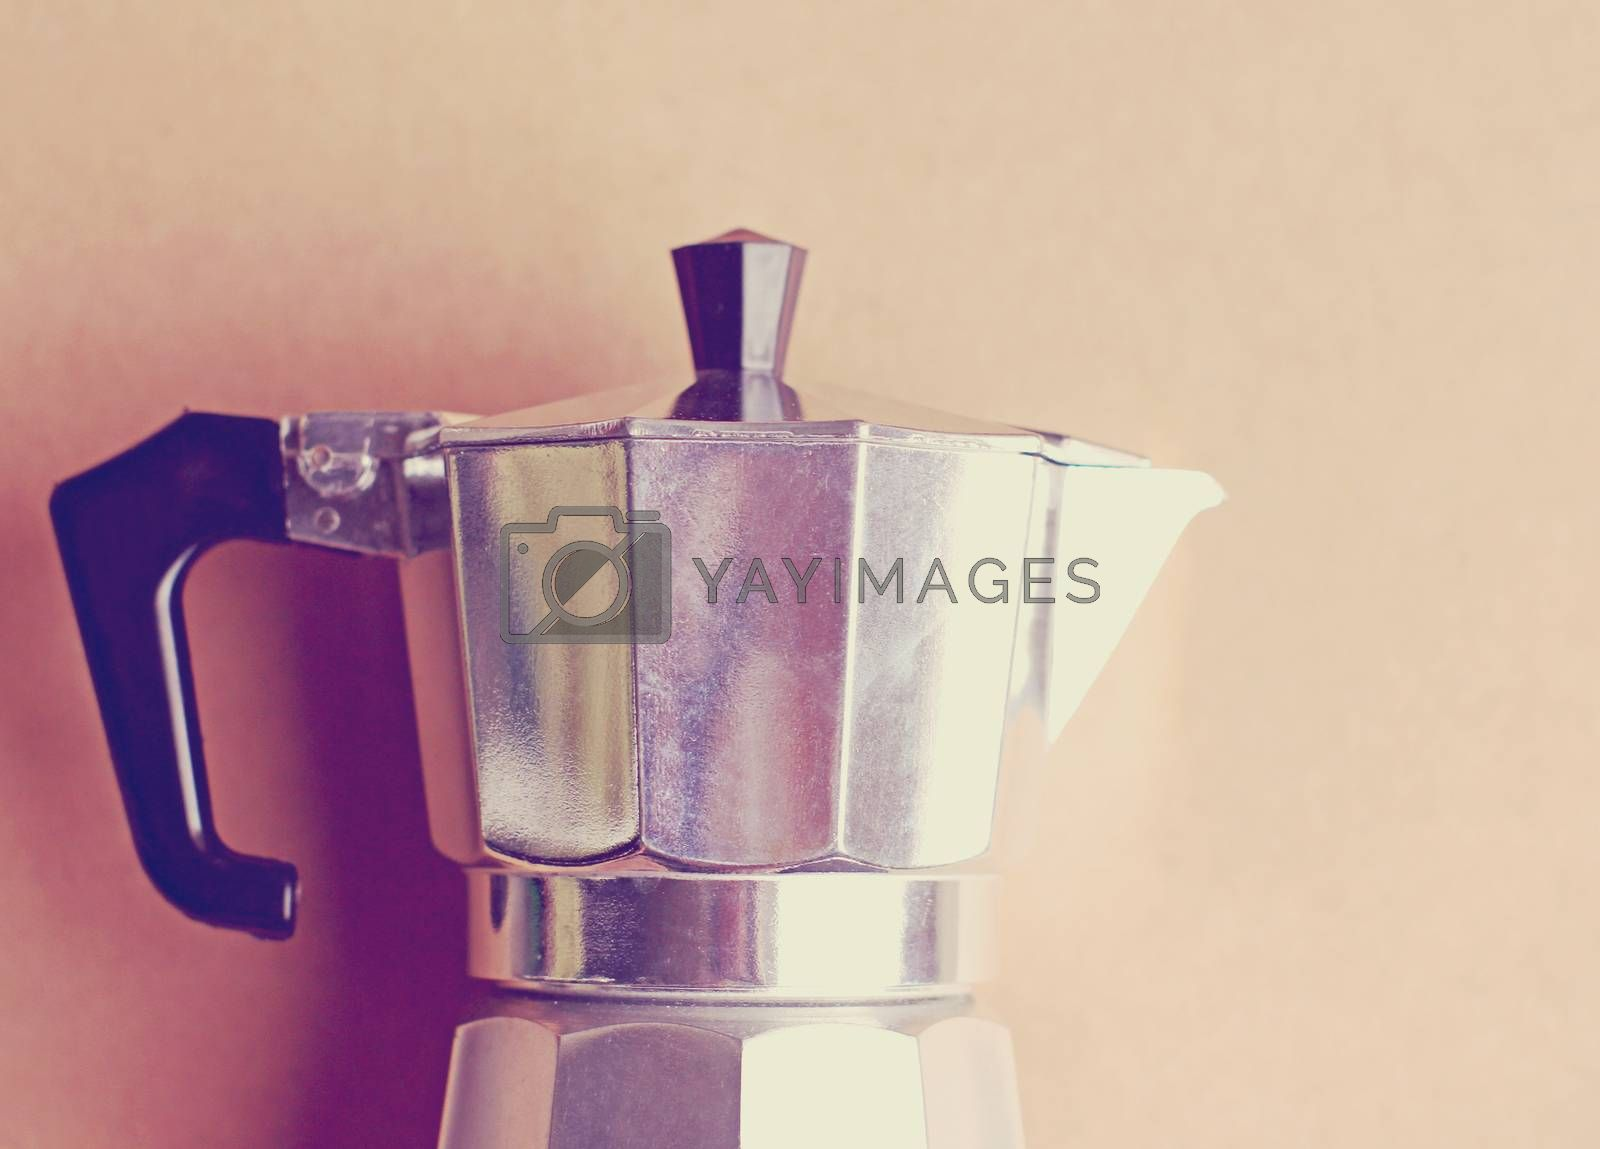 Italian coffee maker with retro filter effect